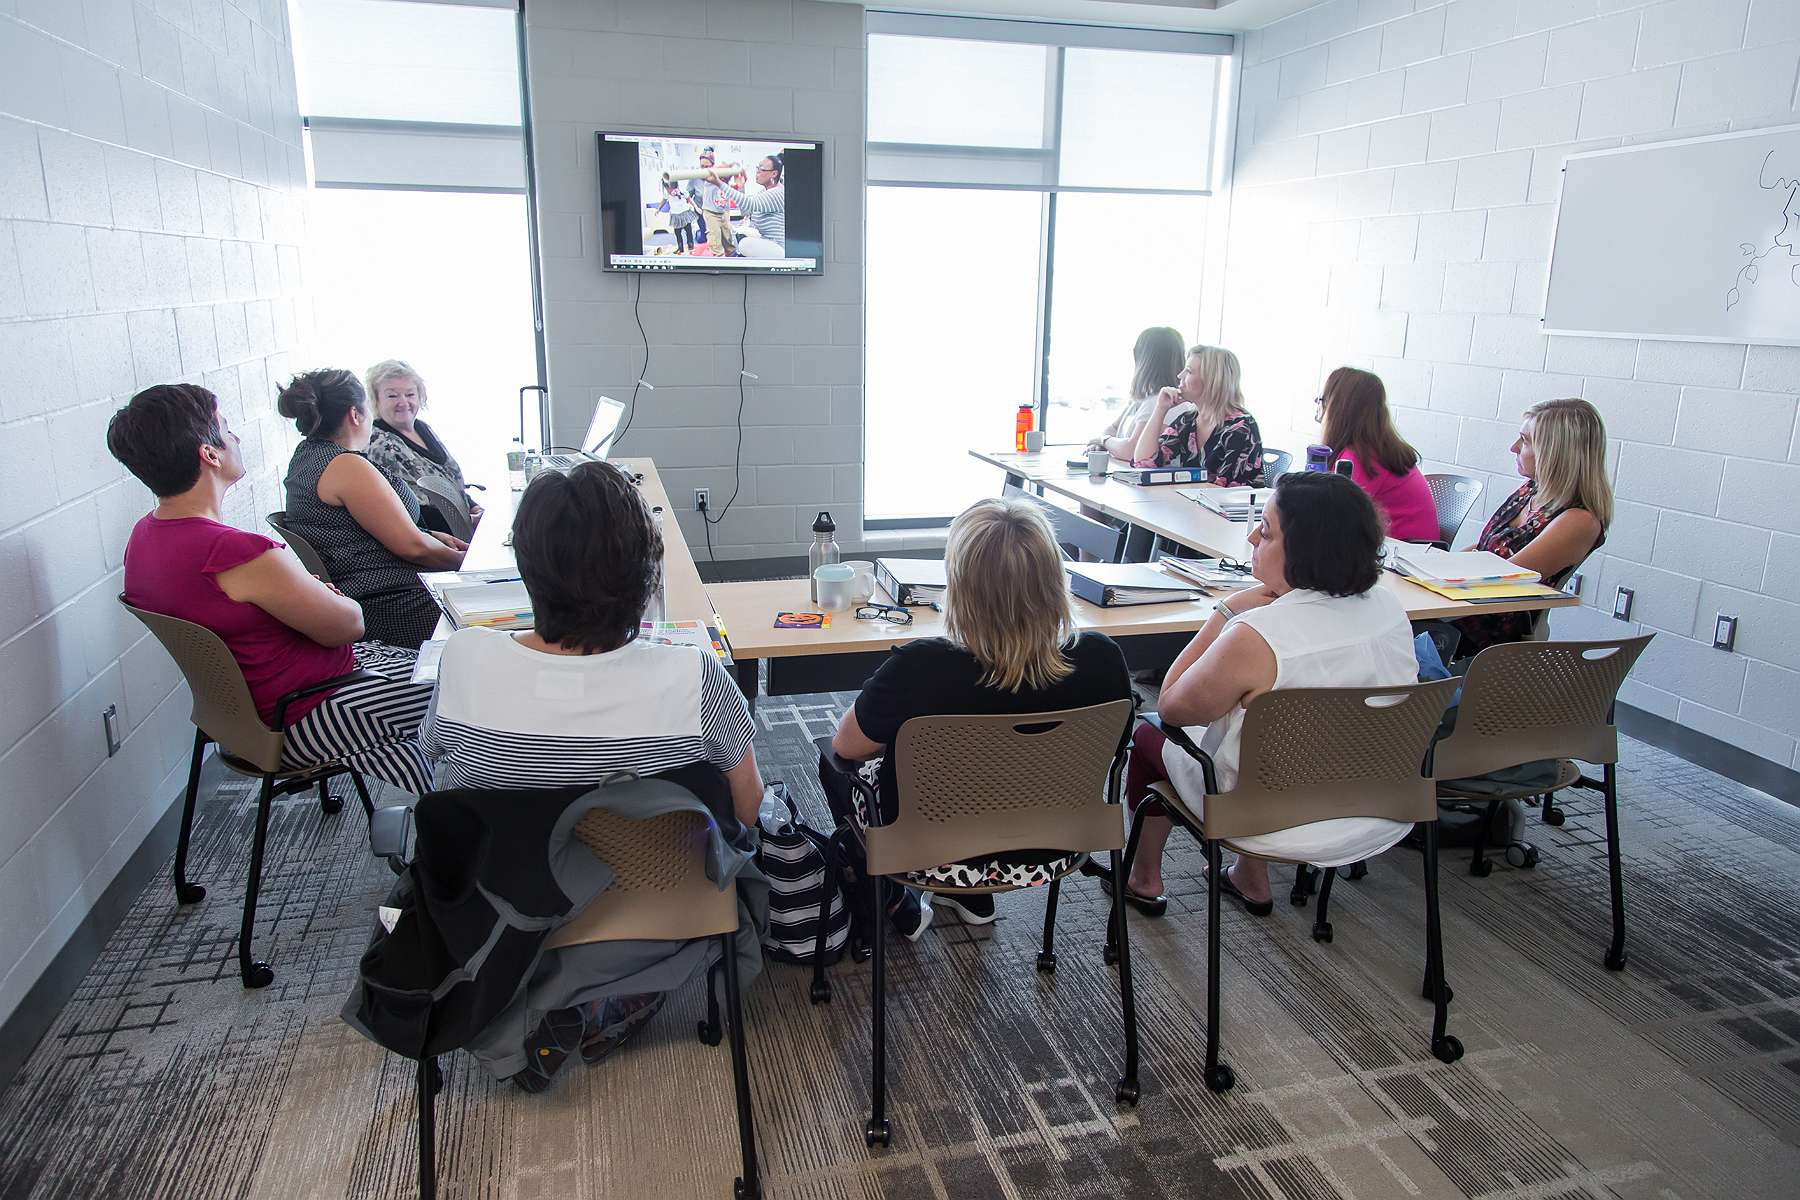 Image of educators gathered around table watching a video on how learning happens.